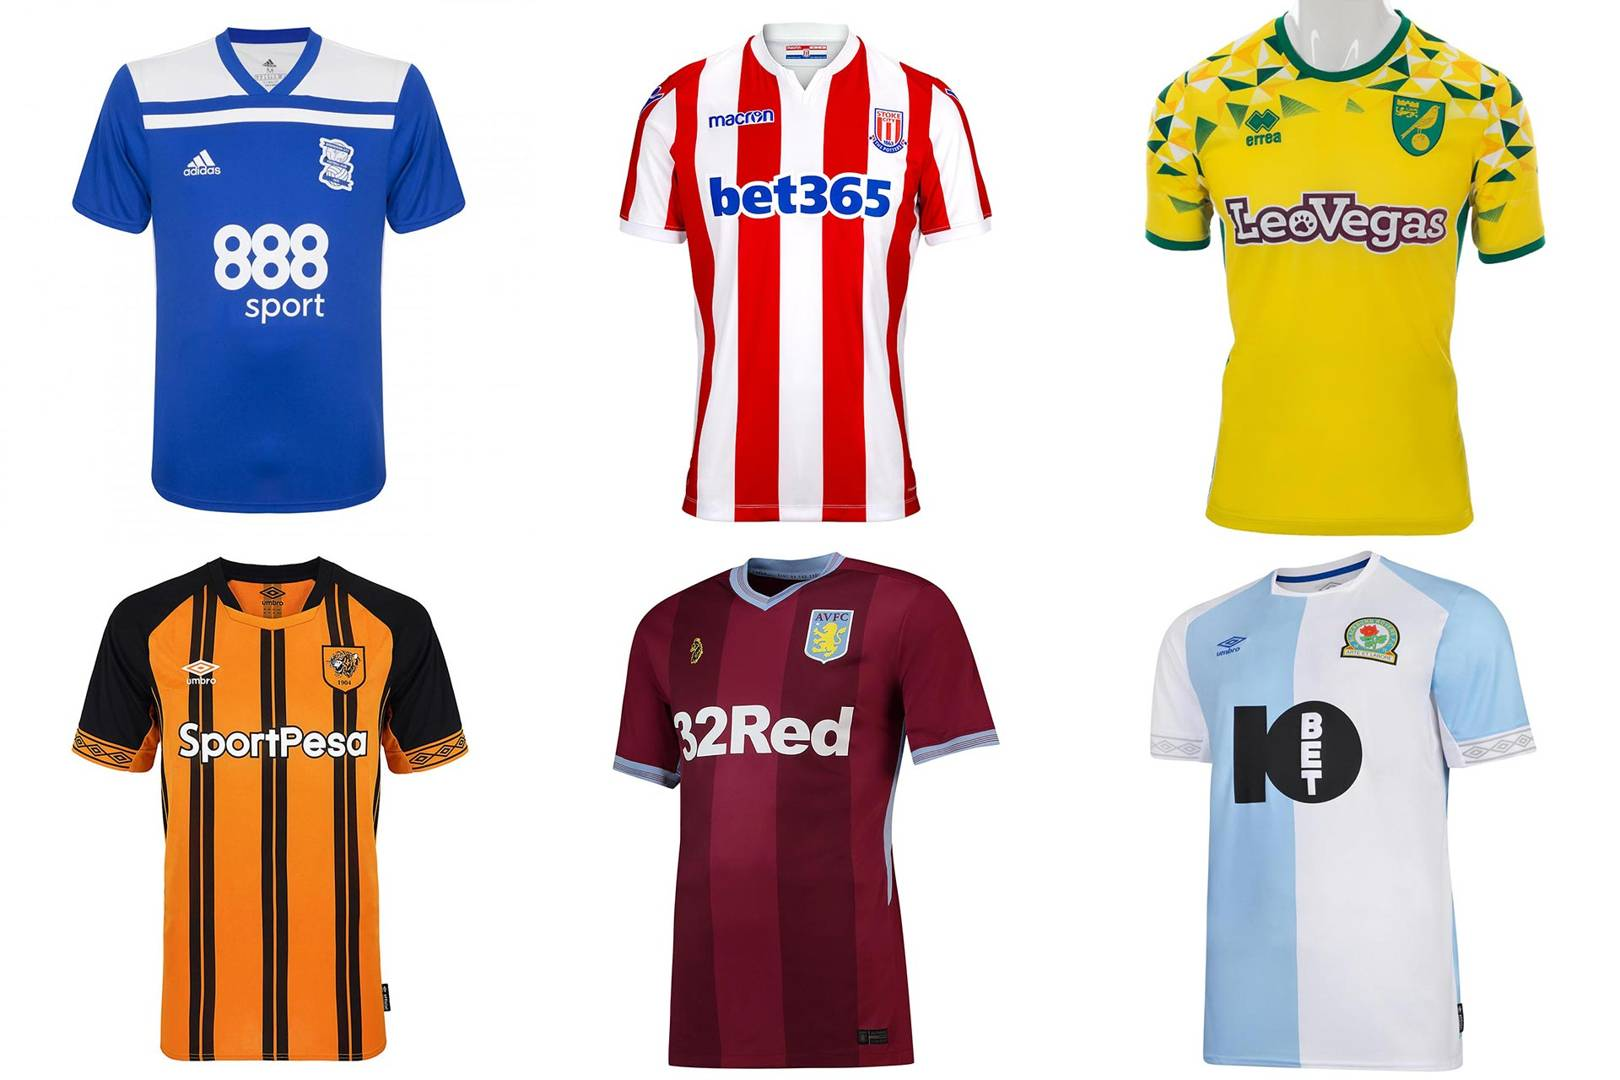 5003a25d20b Championship kits 2018/19 ranked from worst to best | British GQ